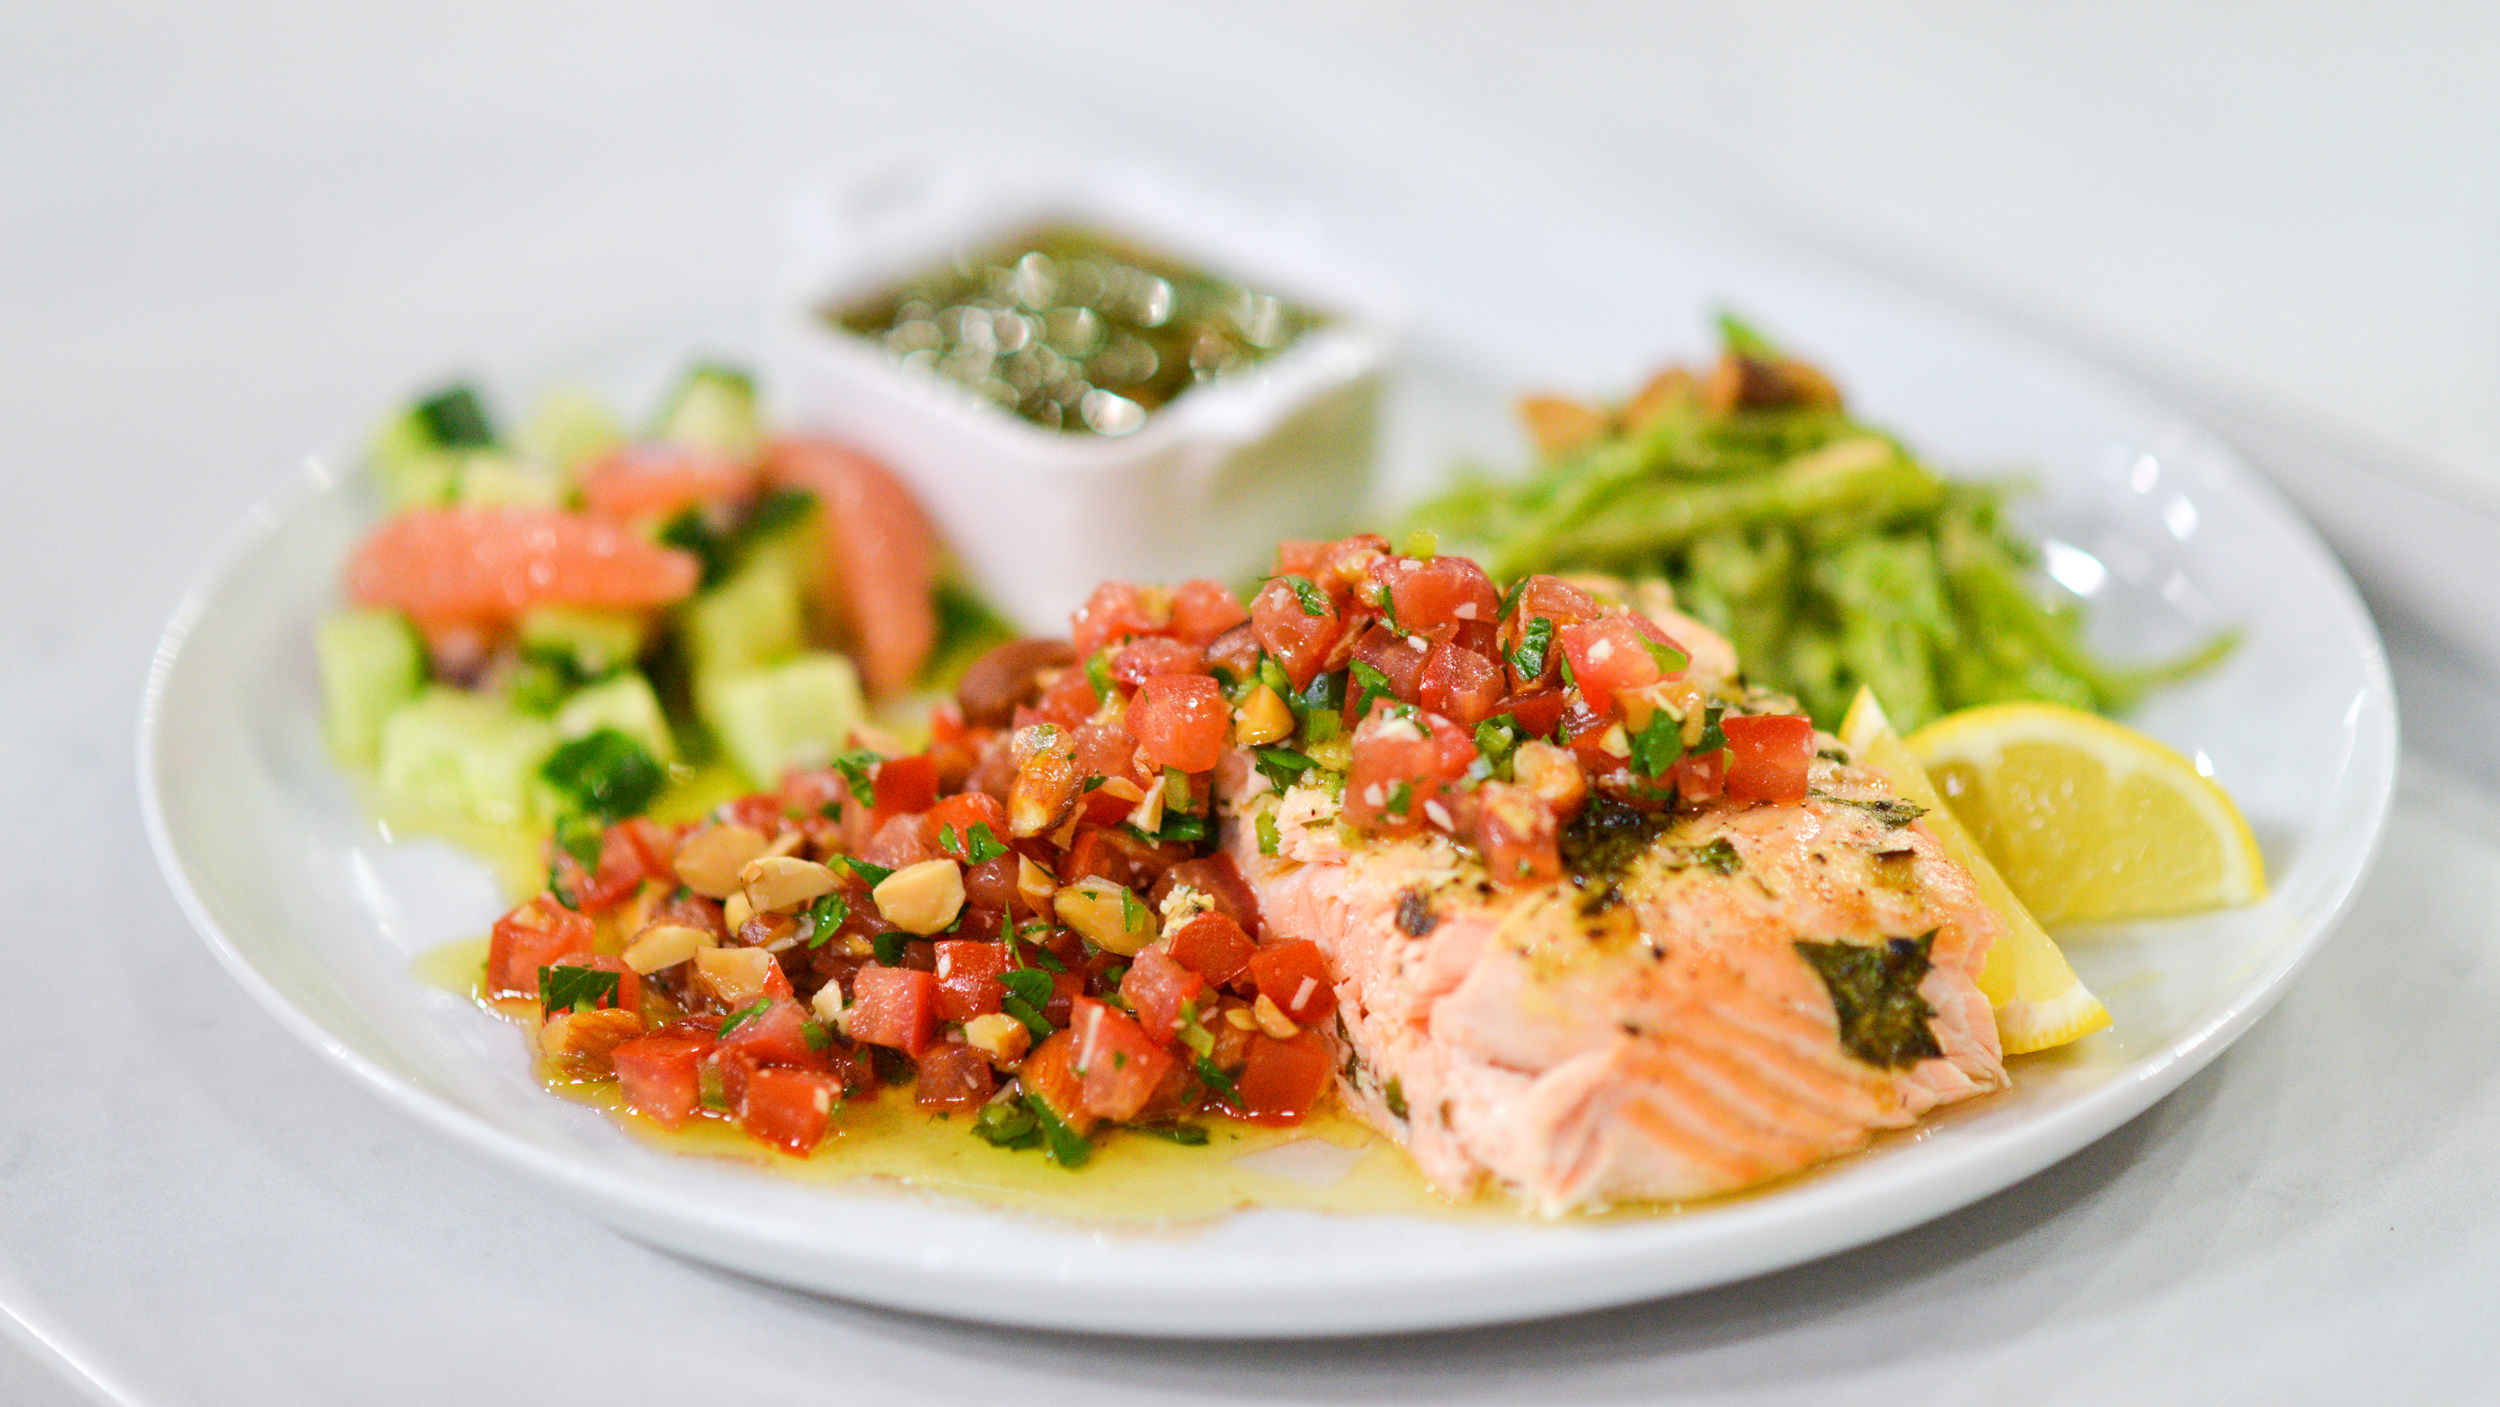 Roasted Salmon With Shallot-Grapefruit Sauce Recipes — Dishmaps